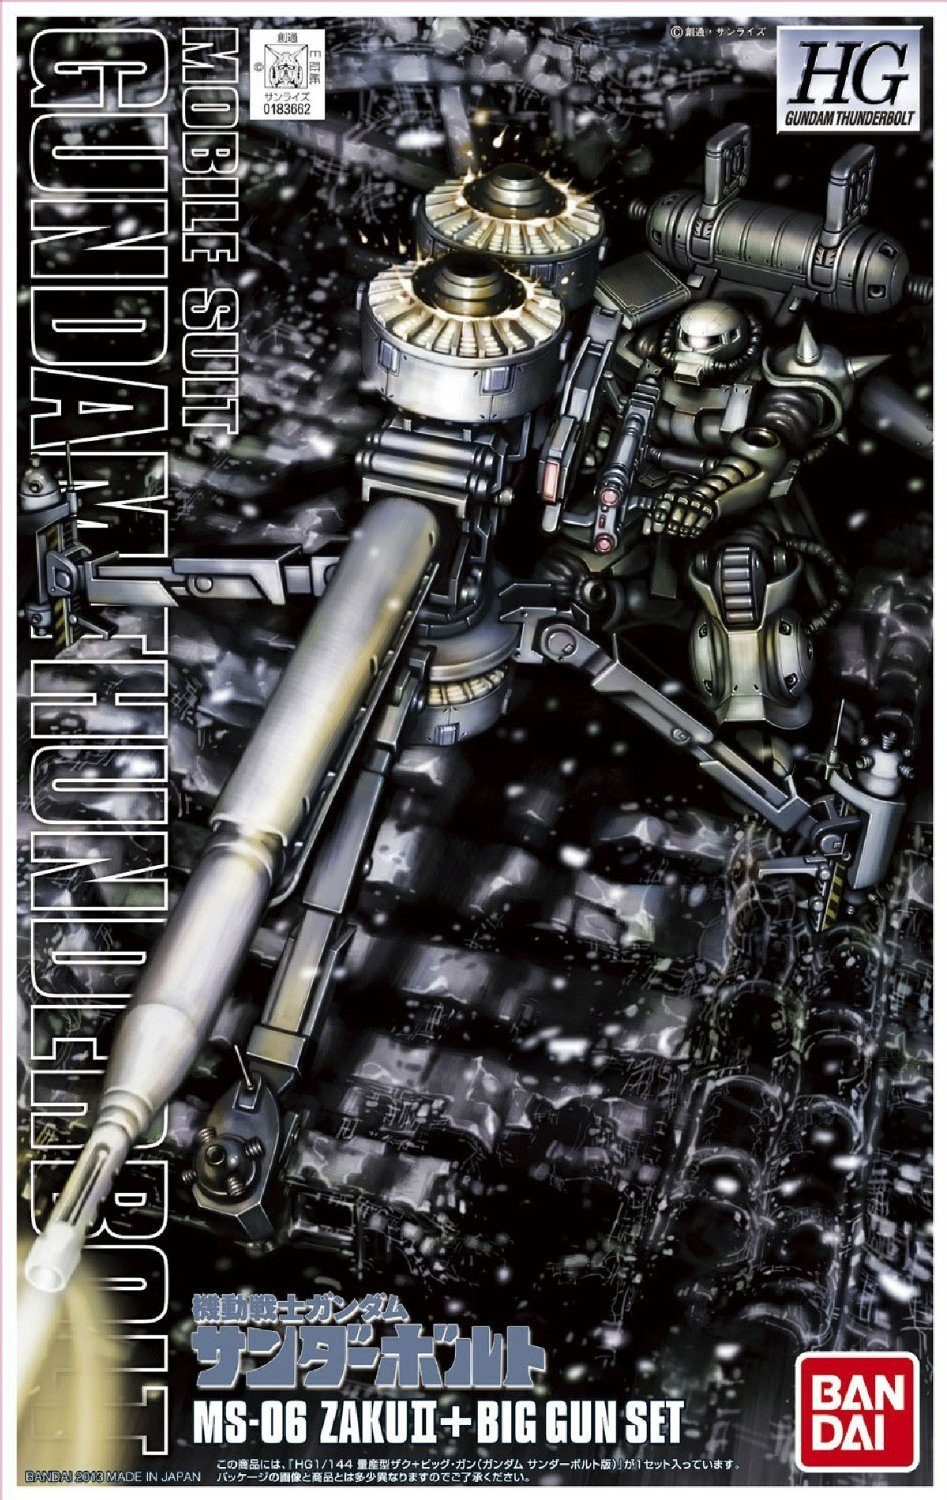 Bandai HG Thunderbolt MS-06 ZAKU II & BIG GUN SET 1/144 scale kit